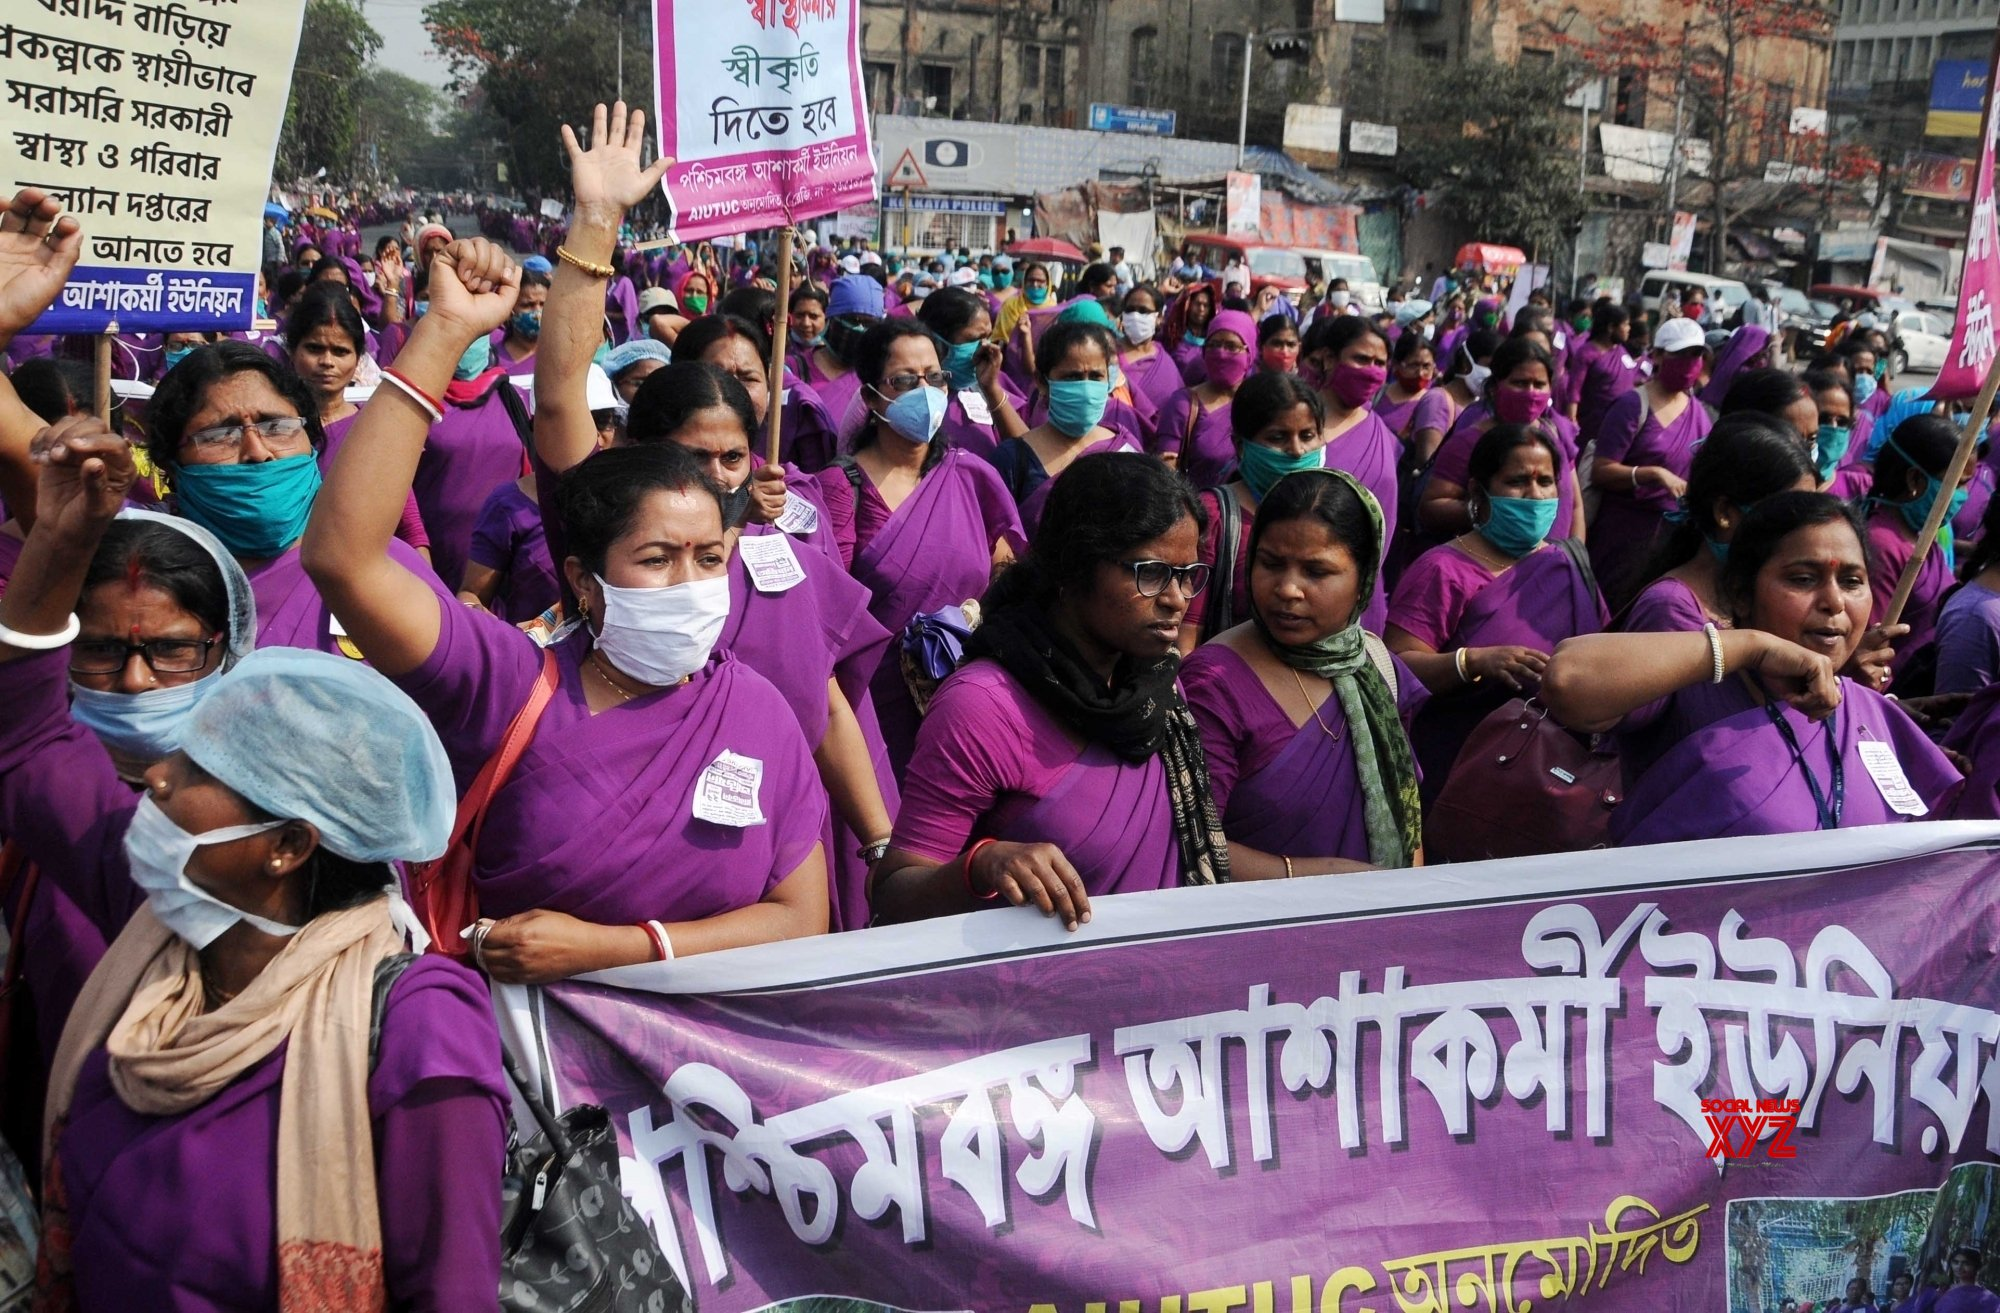 Kolkata: Asha Karmi Union members took part in a protest rally against the State Government for demanding permanency in their salary in Kolkata, West Bengal on Tuesday 23rd February, 2021 #Gallery